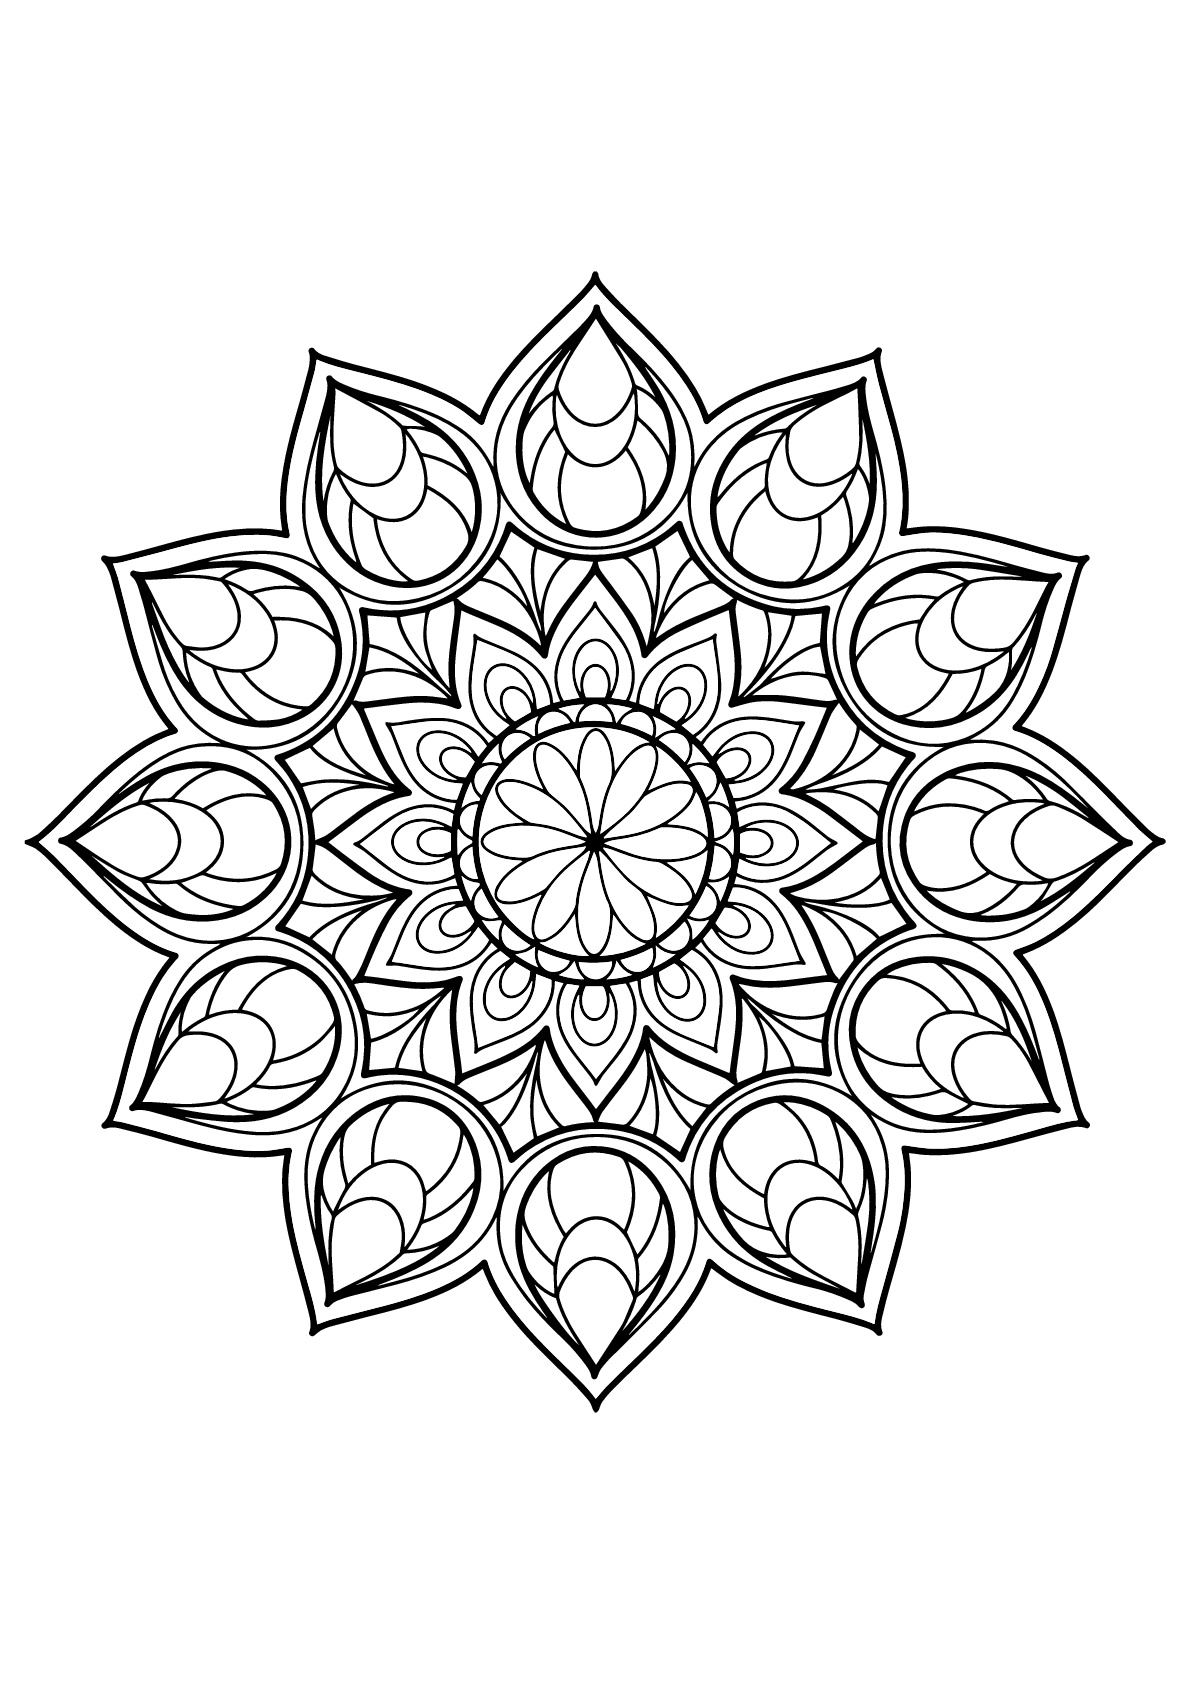 printable indian mandalas coloring pages - photo#17